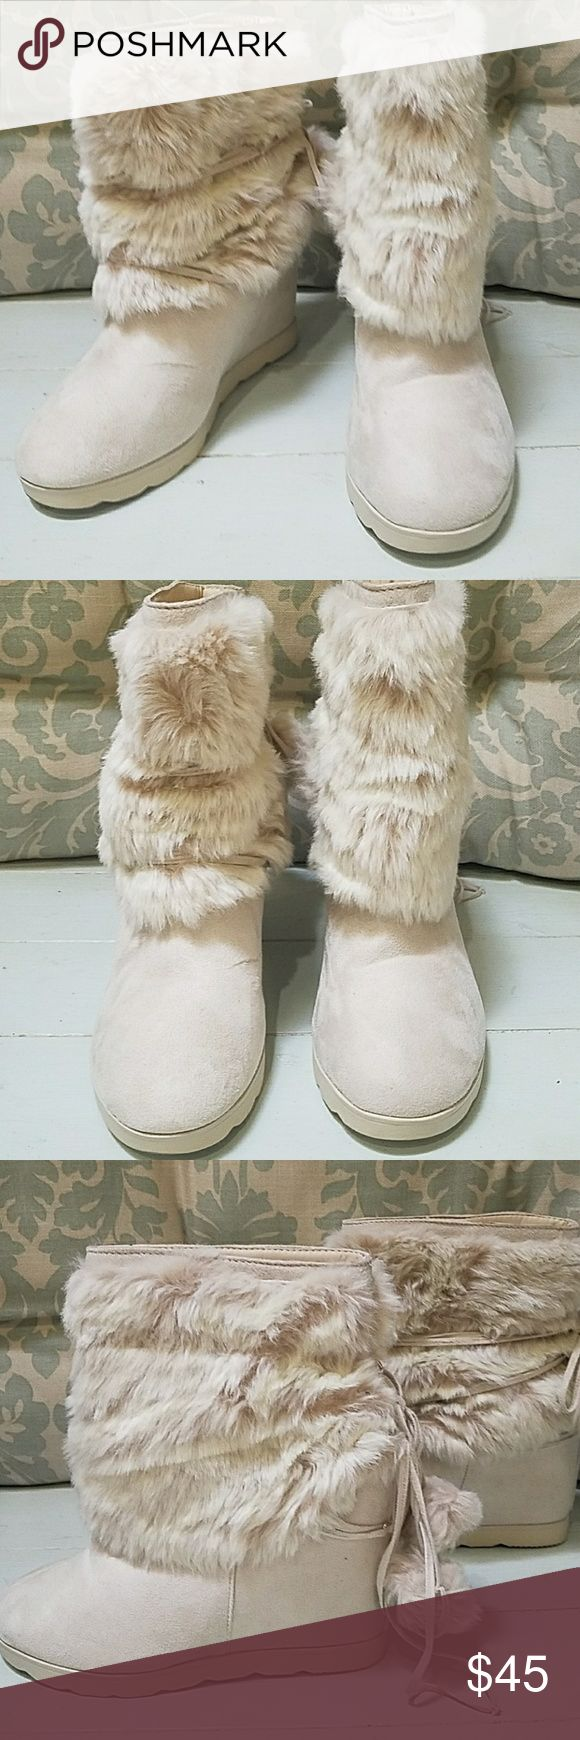 Details about women luxury diamond fashion snow boots rabbit fur boots - Justfab Winter Furry Boots With Pom Poms